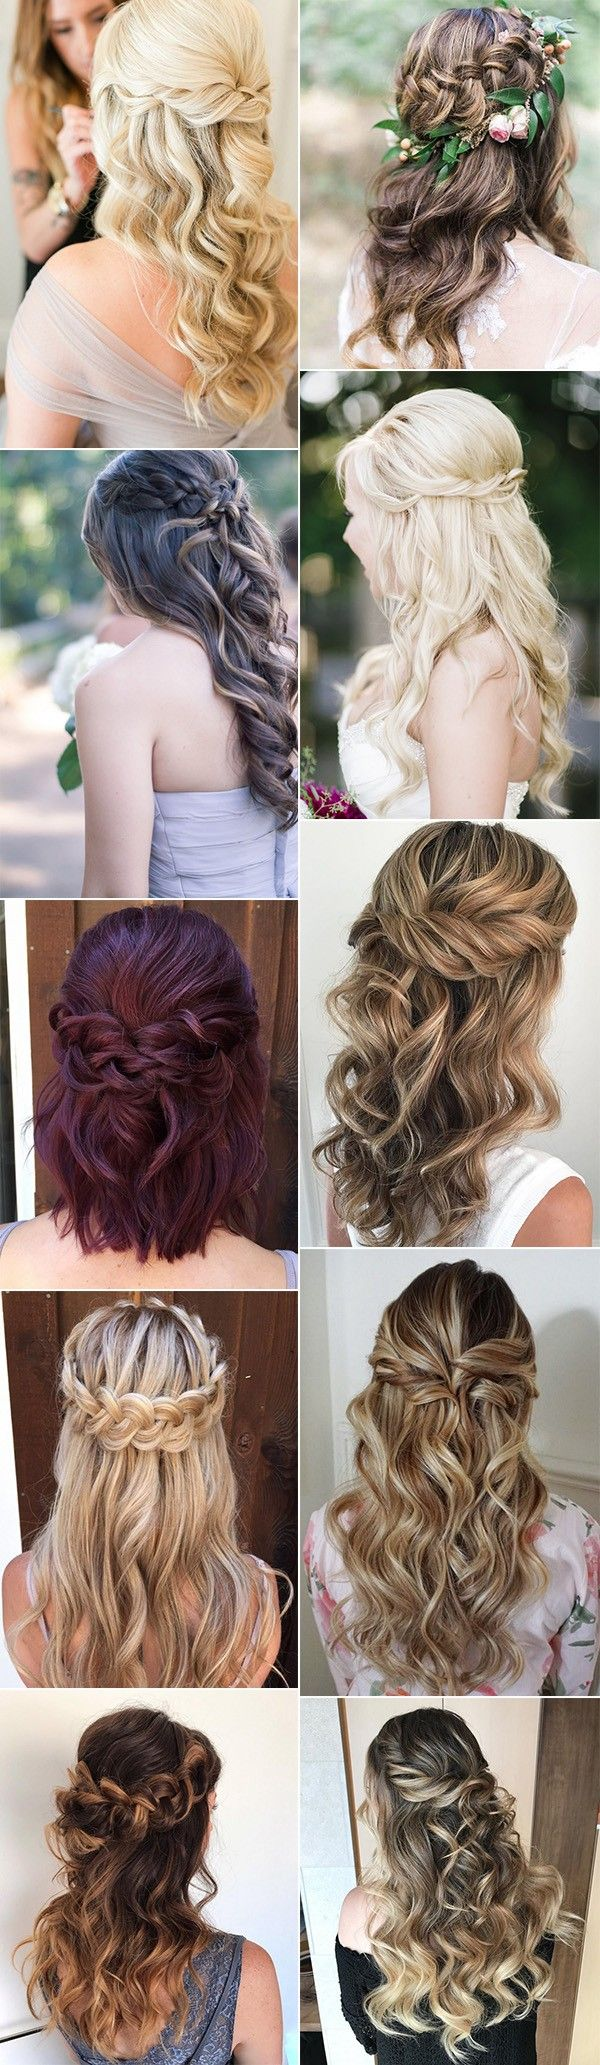 best hair up dos images on pinterest cute hairstyles